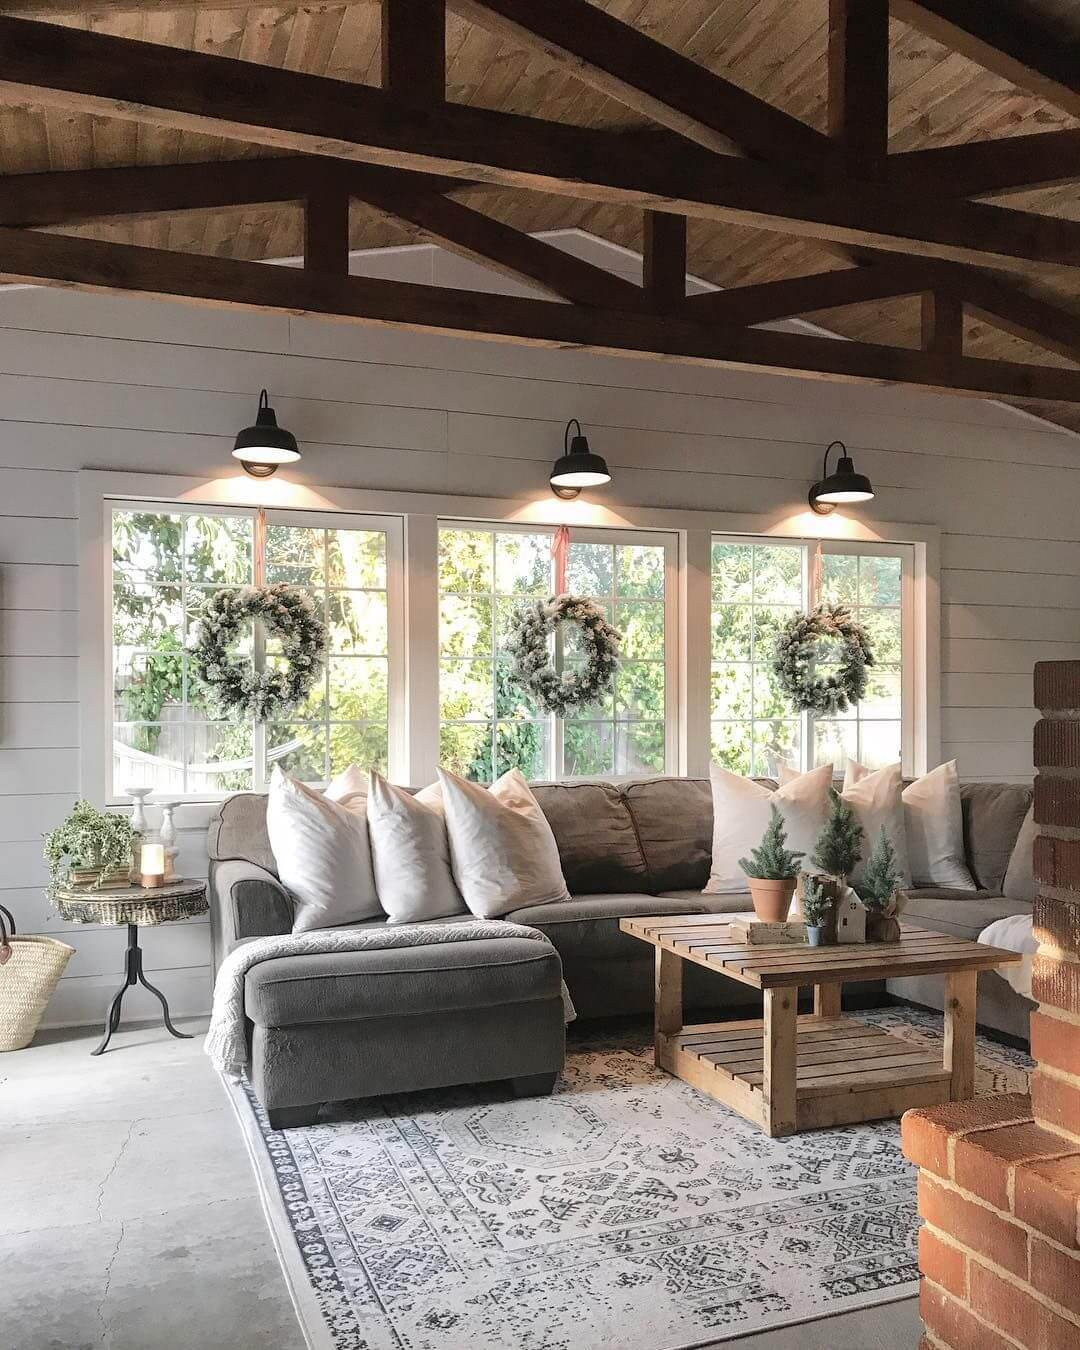 Modern Farmhouse Interior Design: 35+ Best Farmhouse Interior Ideas And Designs For 2020